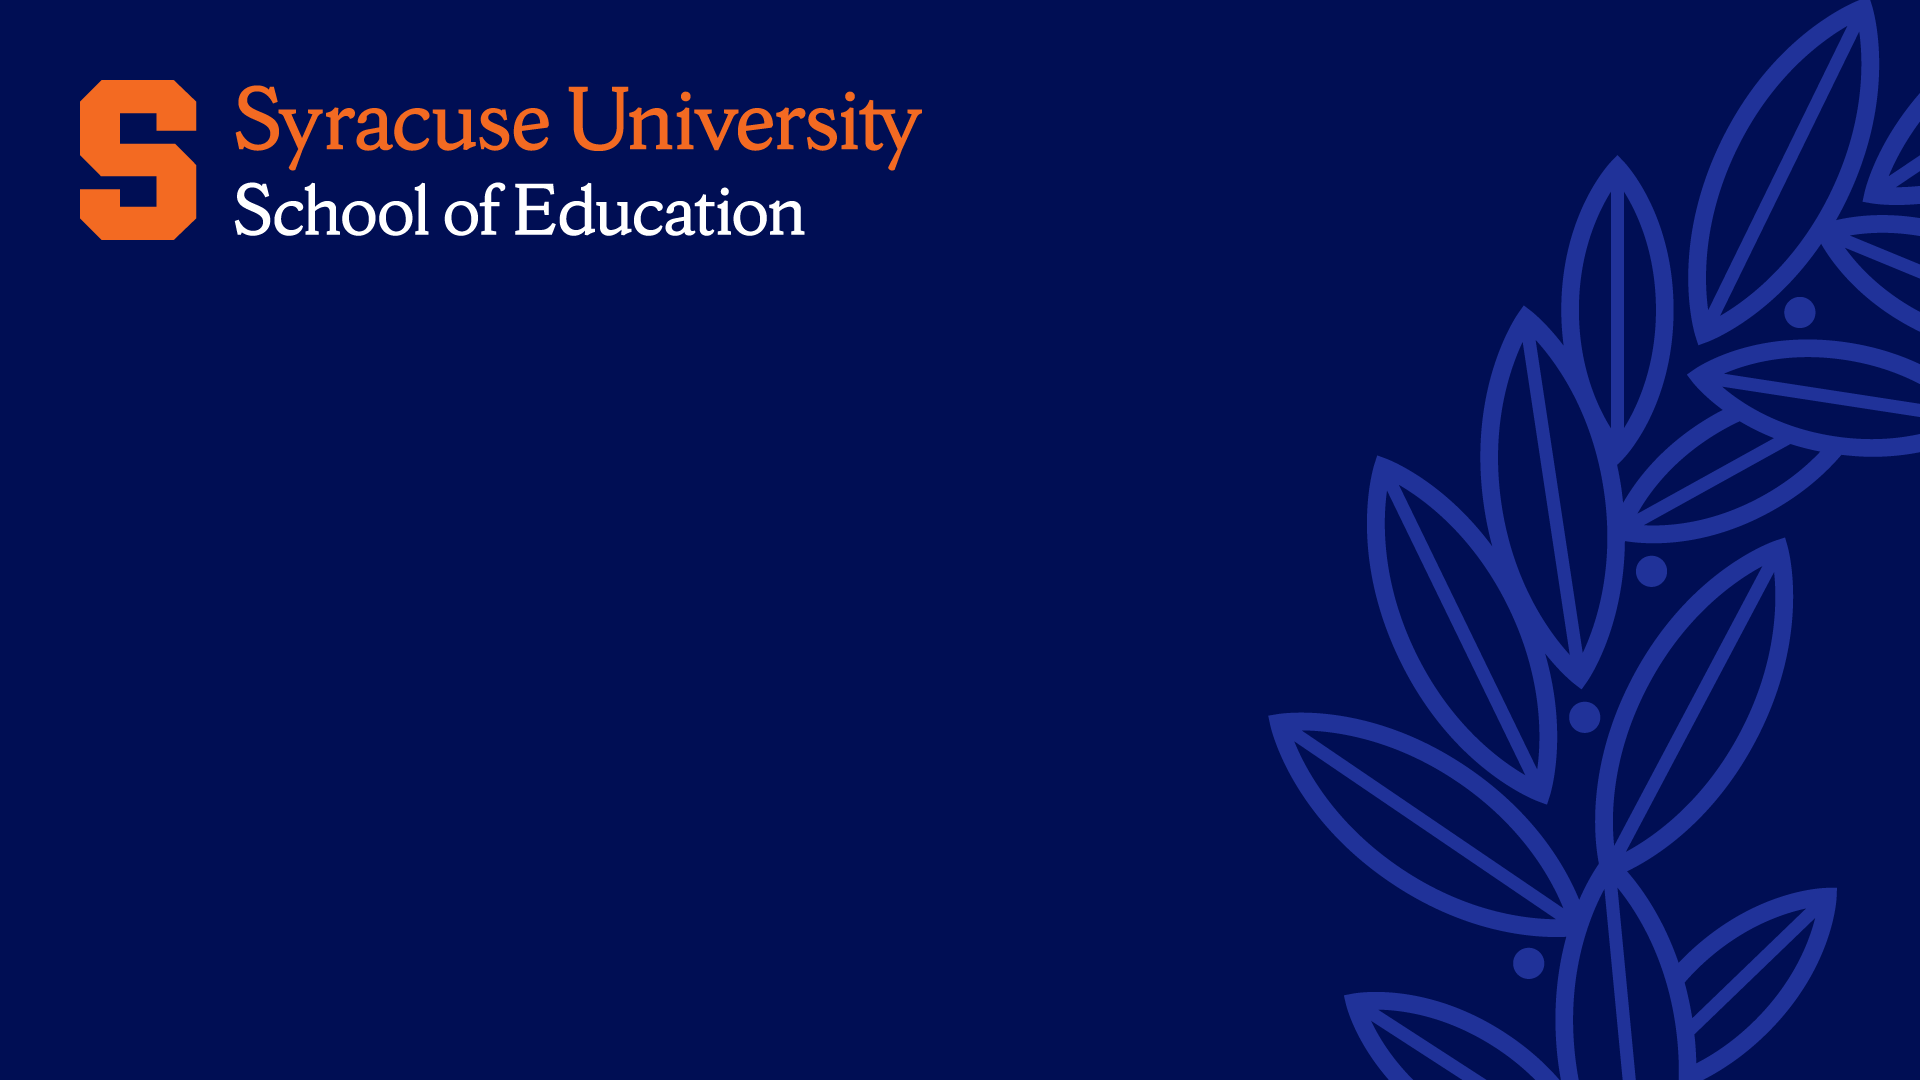 school of education logo and syracuse laurel branch on a blue background